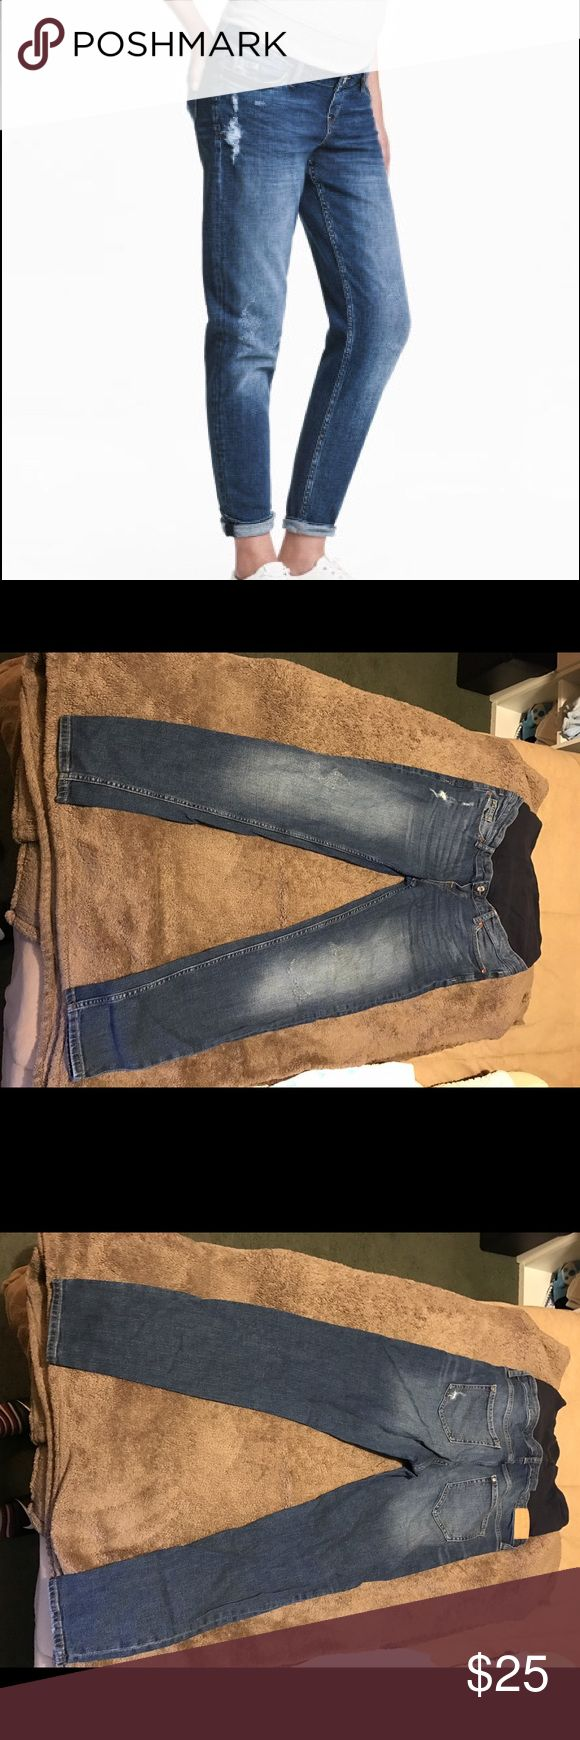 H&M maternity boyfriend jeans Wore these maternity jeans literally twice because I was mostly comfortable with leggings and shorts my whole pregnancy so they are in great condition and holds belly up so well. H&M Jeans Boyfriend